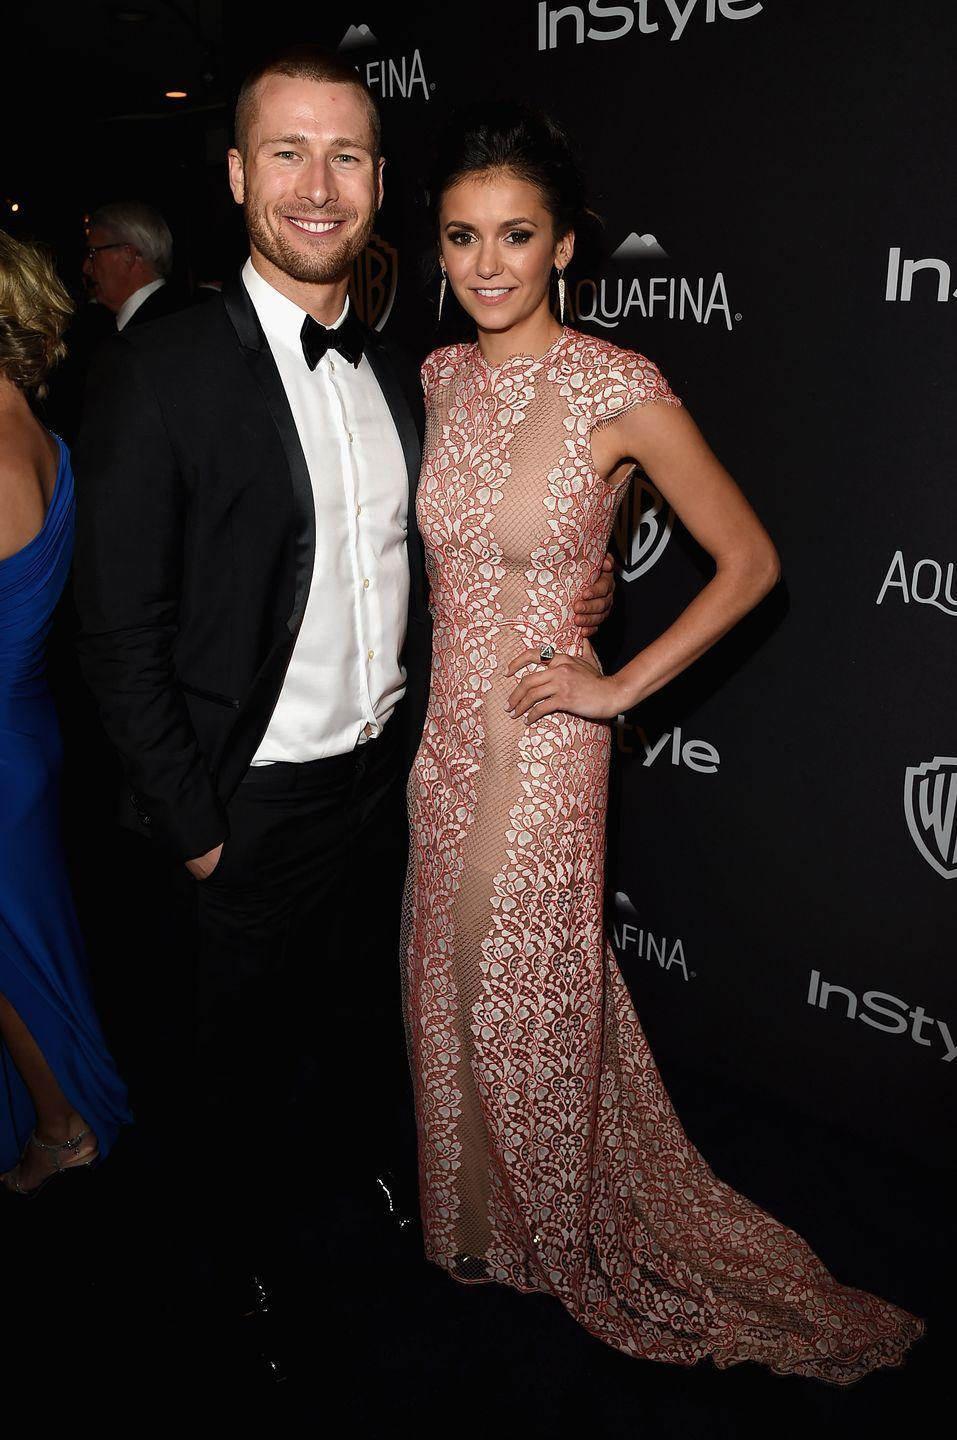 "<p>Dobrev and Powell began dating in the summer of 2017, but the couple decided to slow things down in November of that year. They reportedly chose to take a break because of Dobrev's busy schedule, <a href=""http://www.eonline.com/news/897118/nina-dobrev-and-glen-powell-taking-time-apart-amid-busy-schedules"" rel=""nofollow noopener"" target=""_blank"" data-ylk=""slk:E! News"" class=""link rapid-noclick-resp""><em>E! News</em></a> reports. </p>"